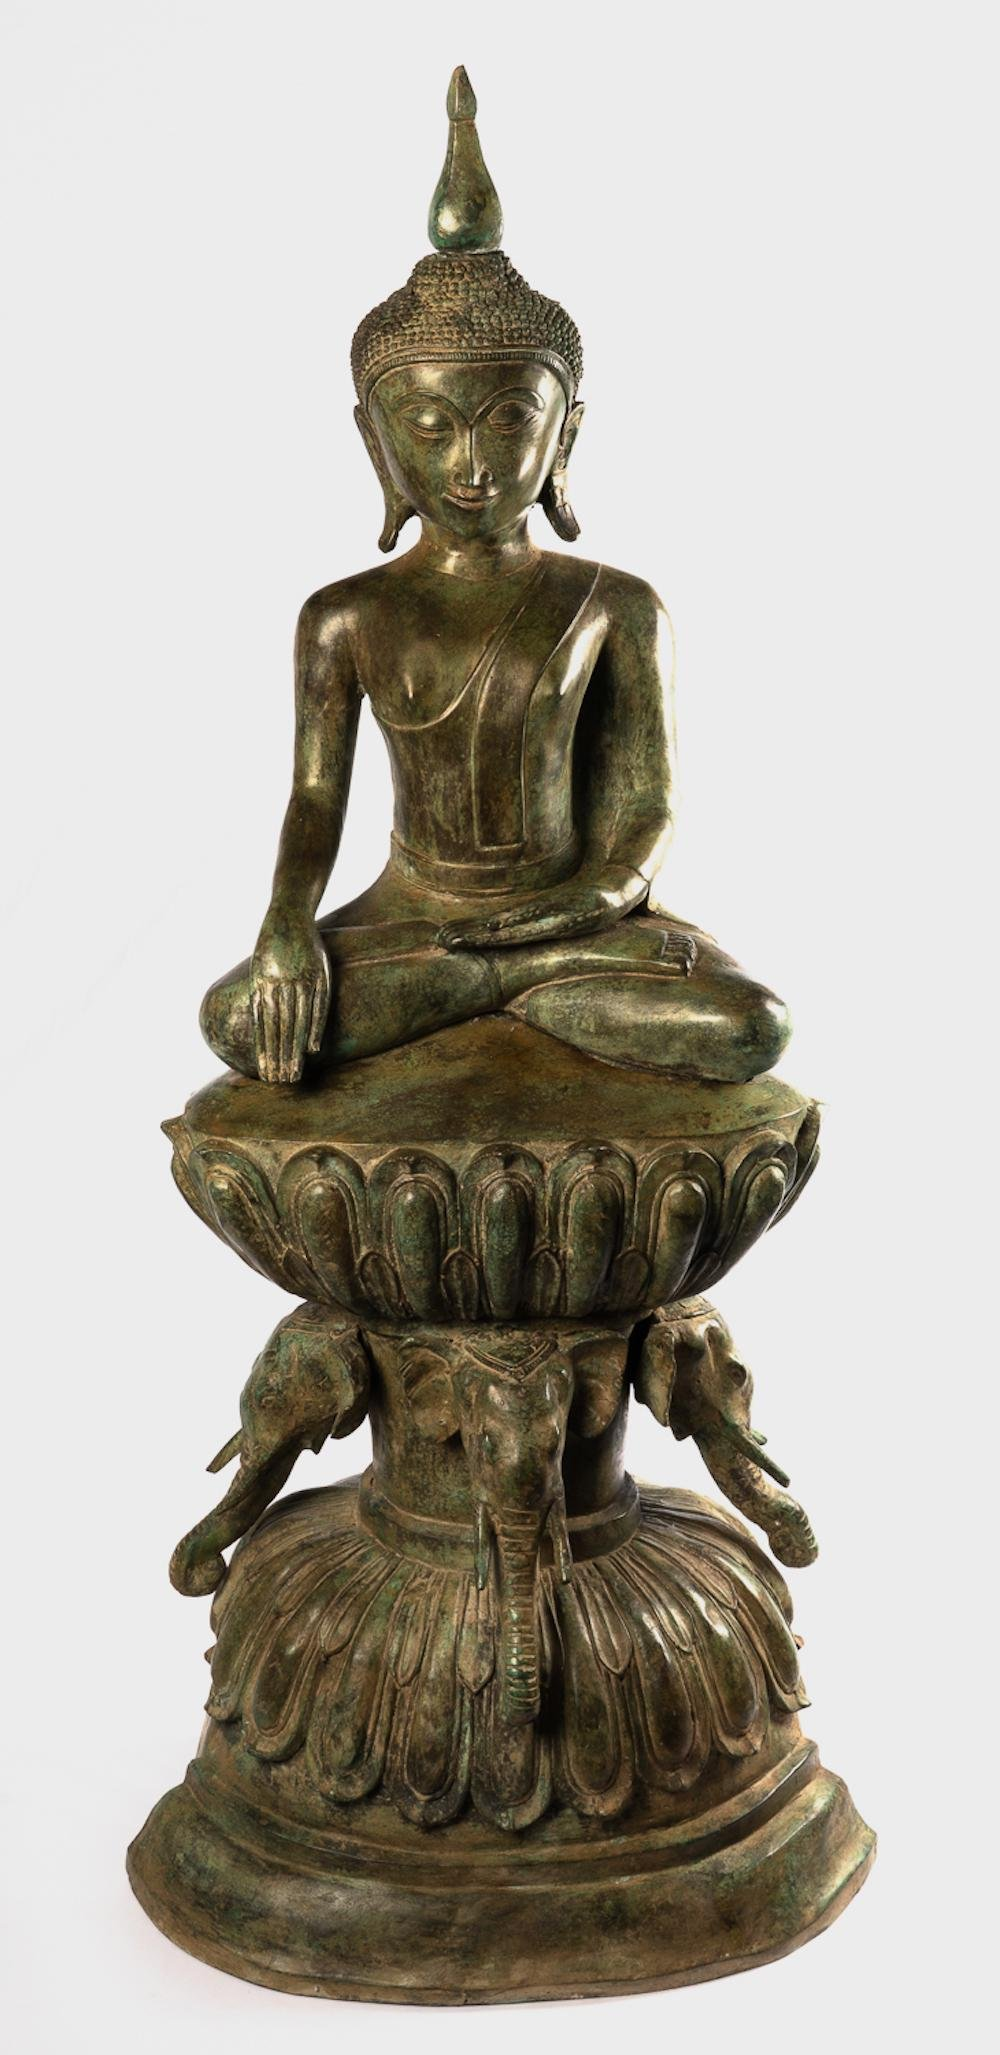 Antique Laos Style Seated Enlightenment Large Bronze